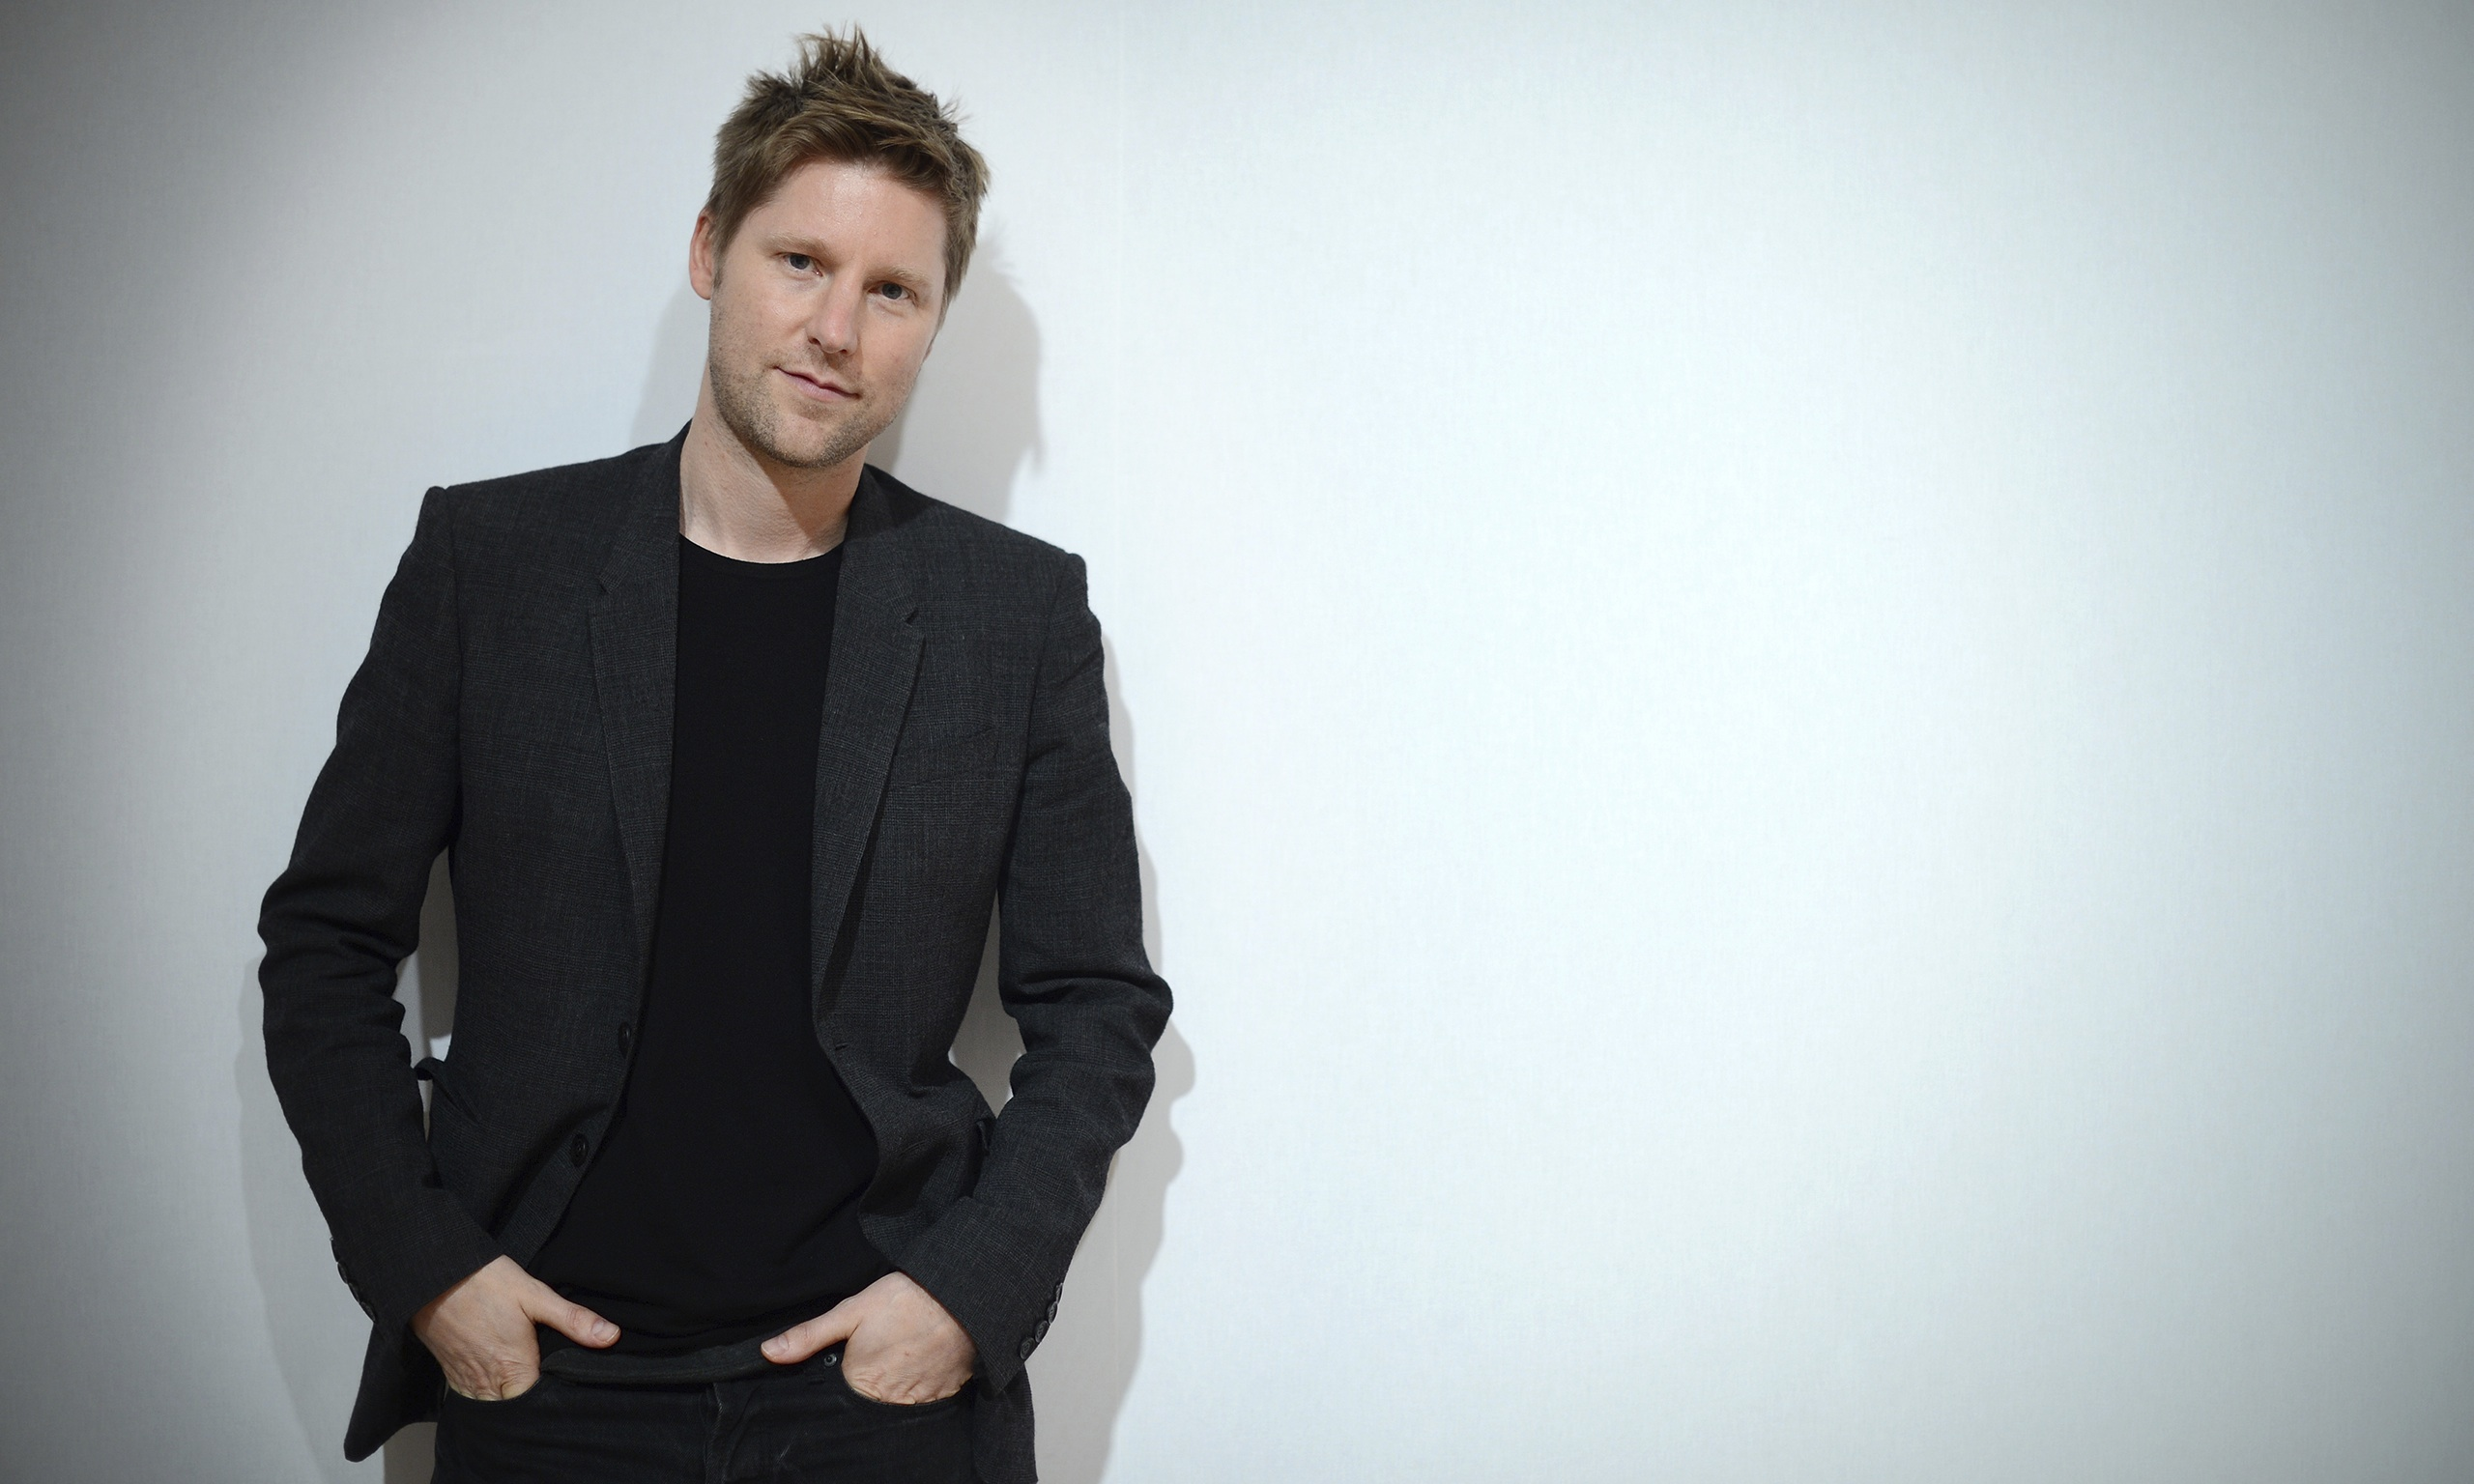 Christopher Bailey Net Worth